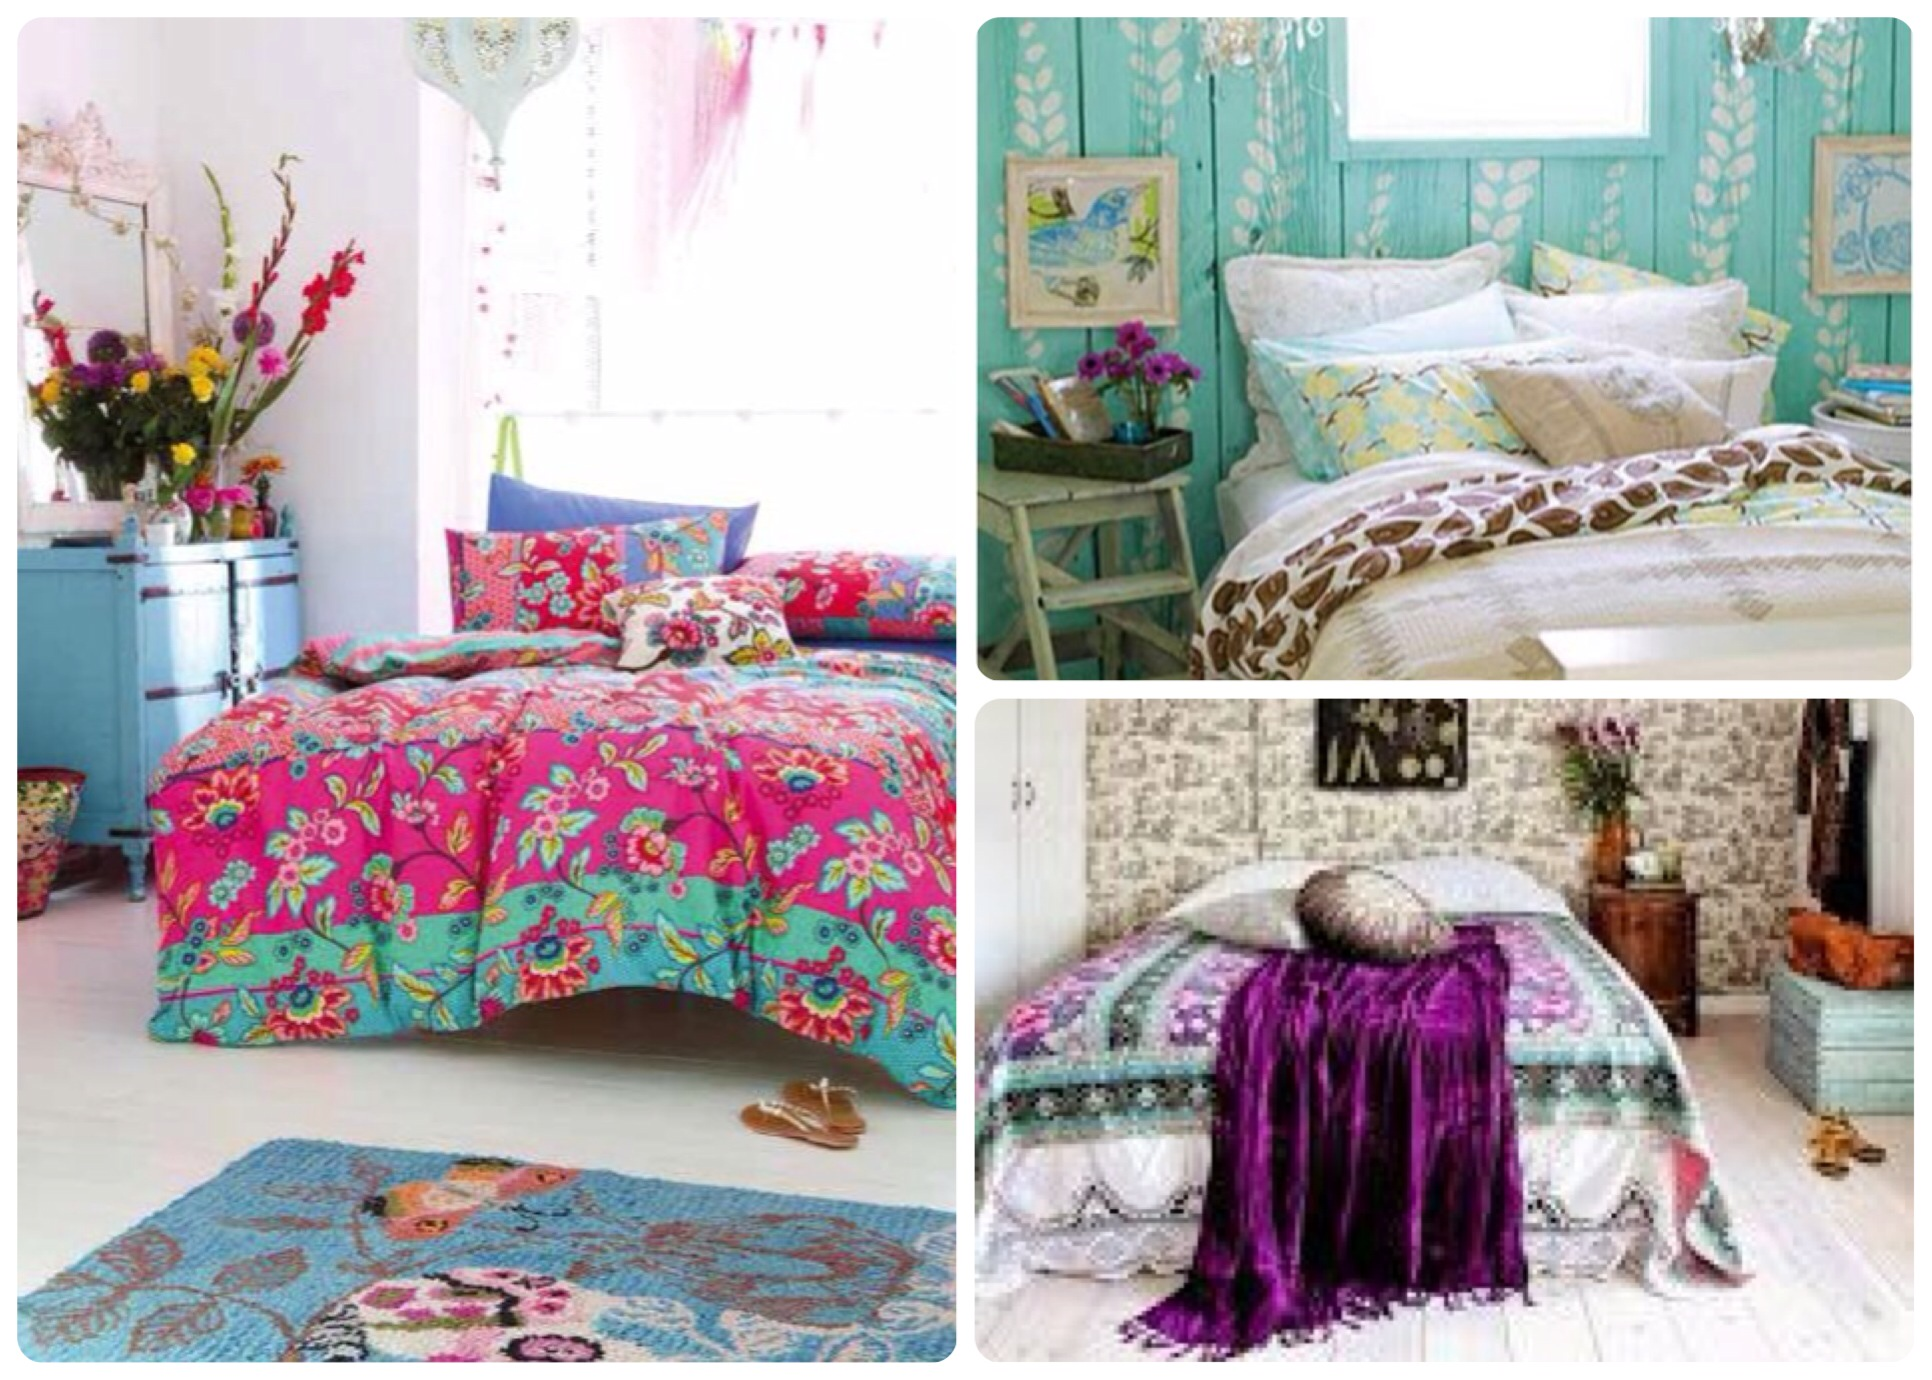 Las claves de la deco boho chic clouds events for Ideas y estilos deco